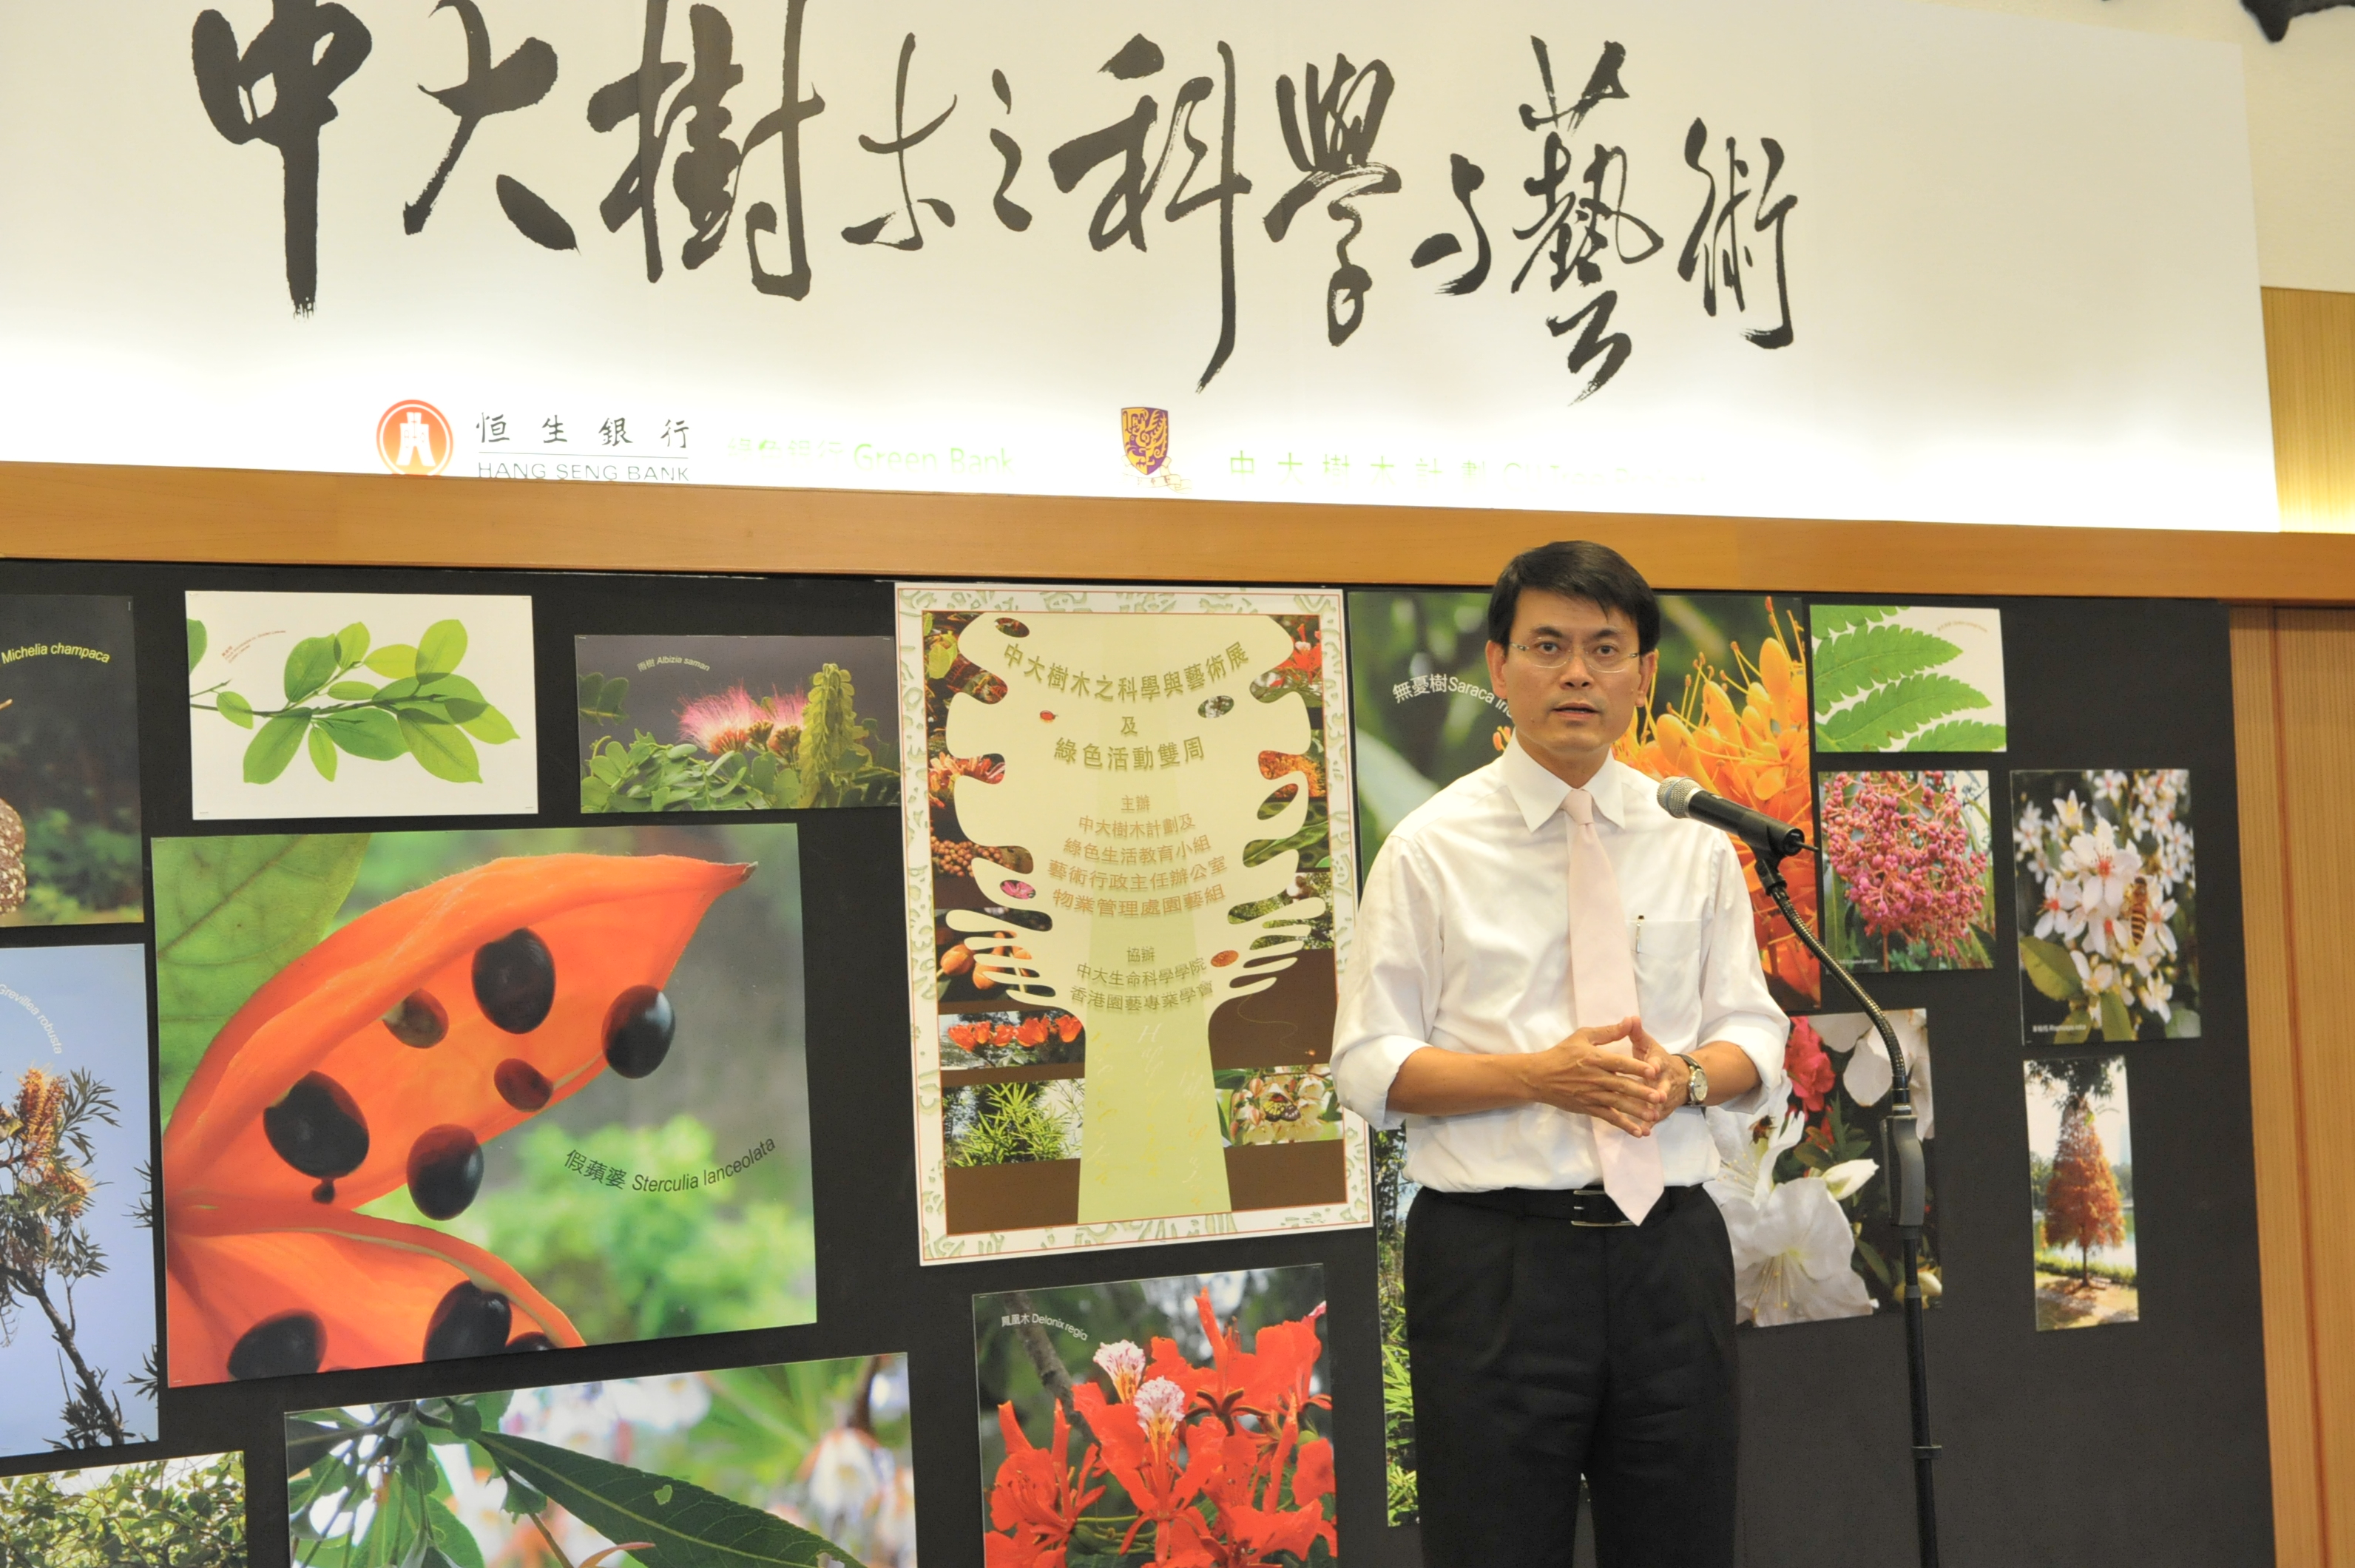 Speech by The Honourable Edward Yau Tang-wah, Secretary for the Environment, HKSAR Government